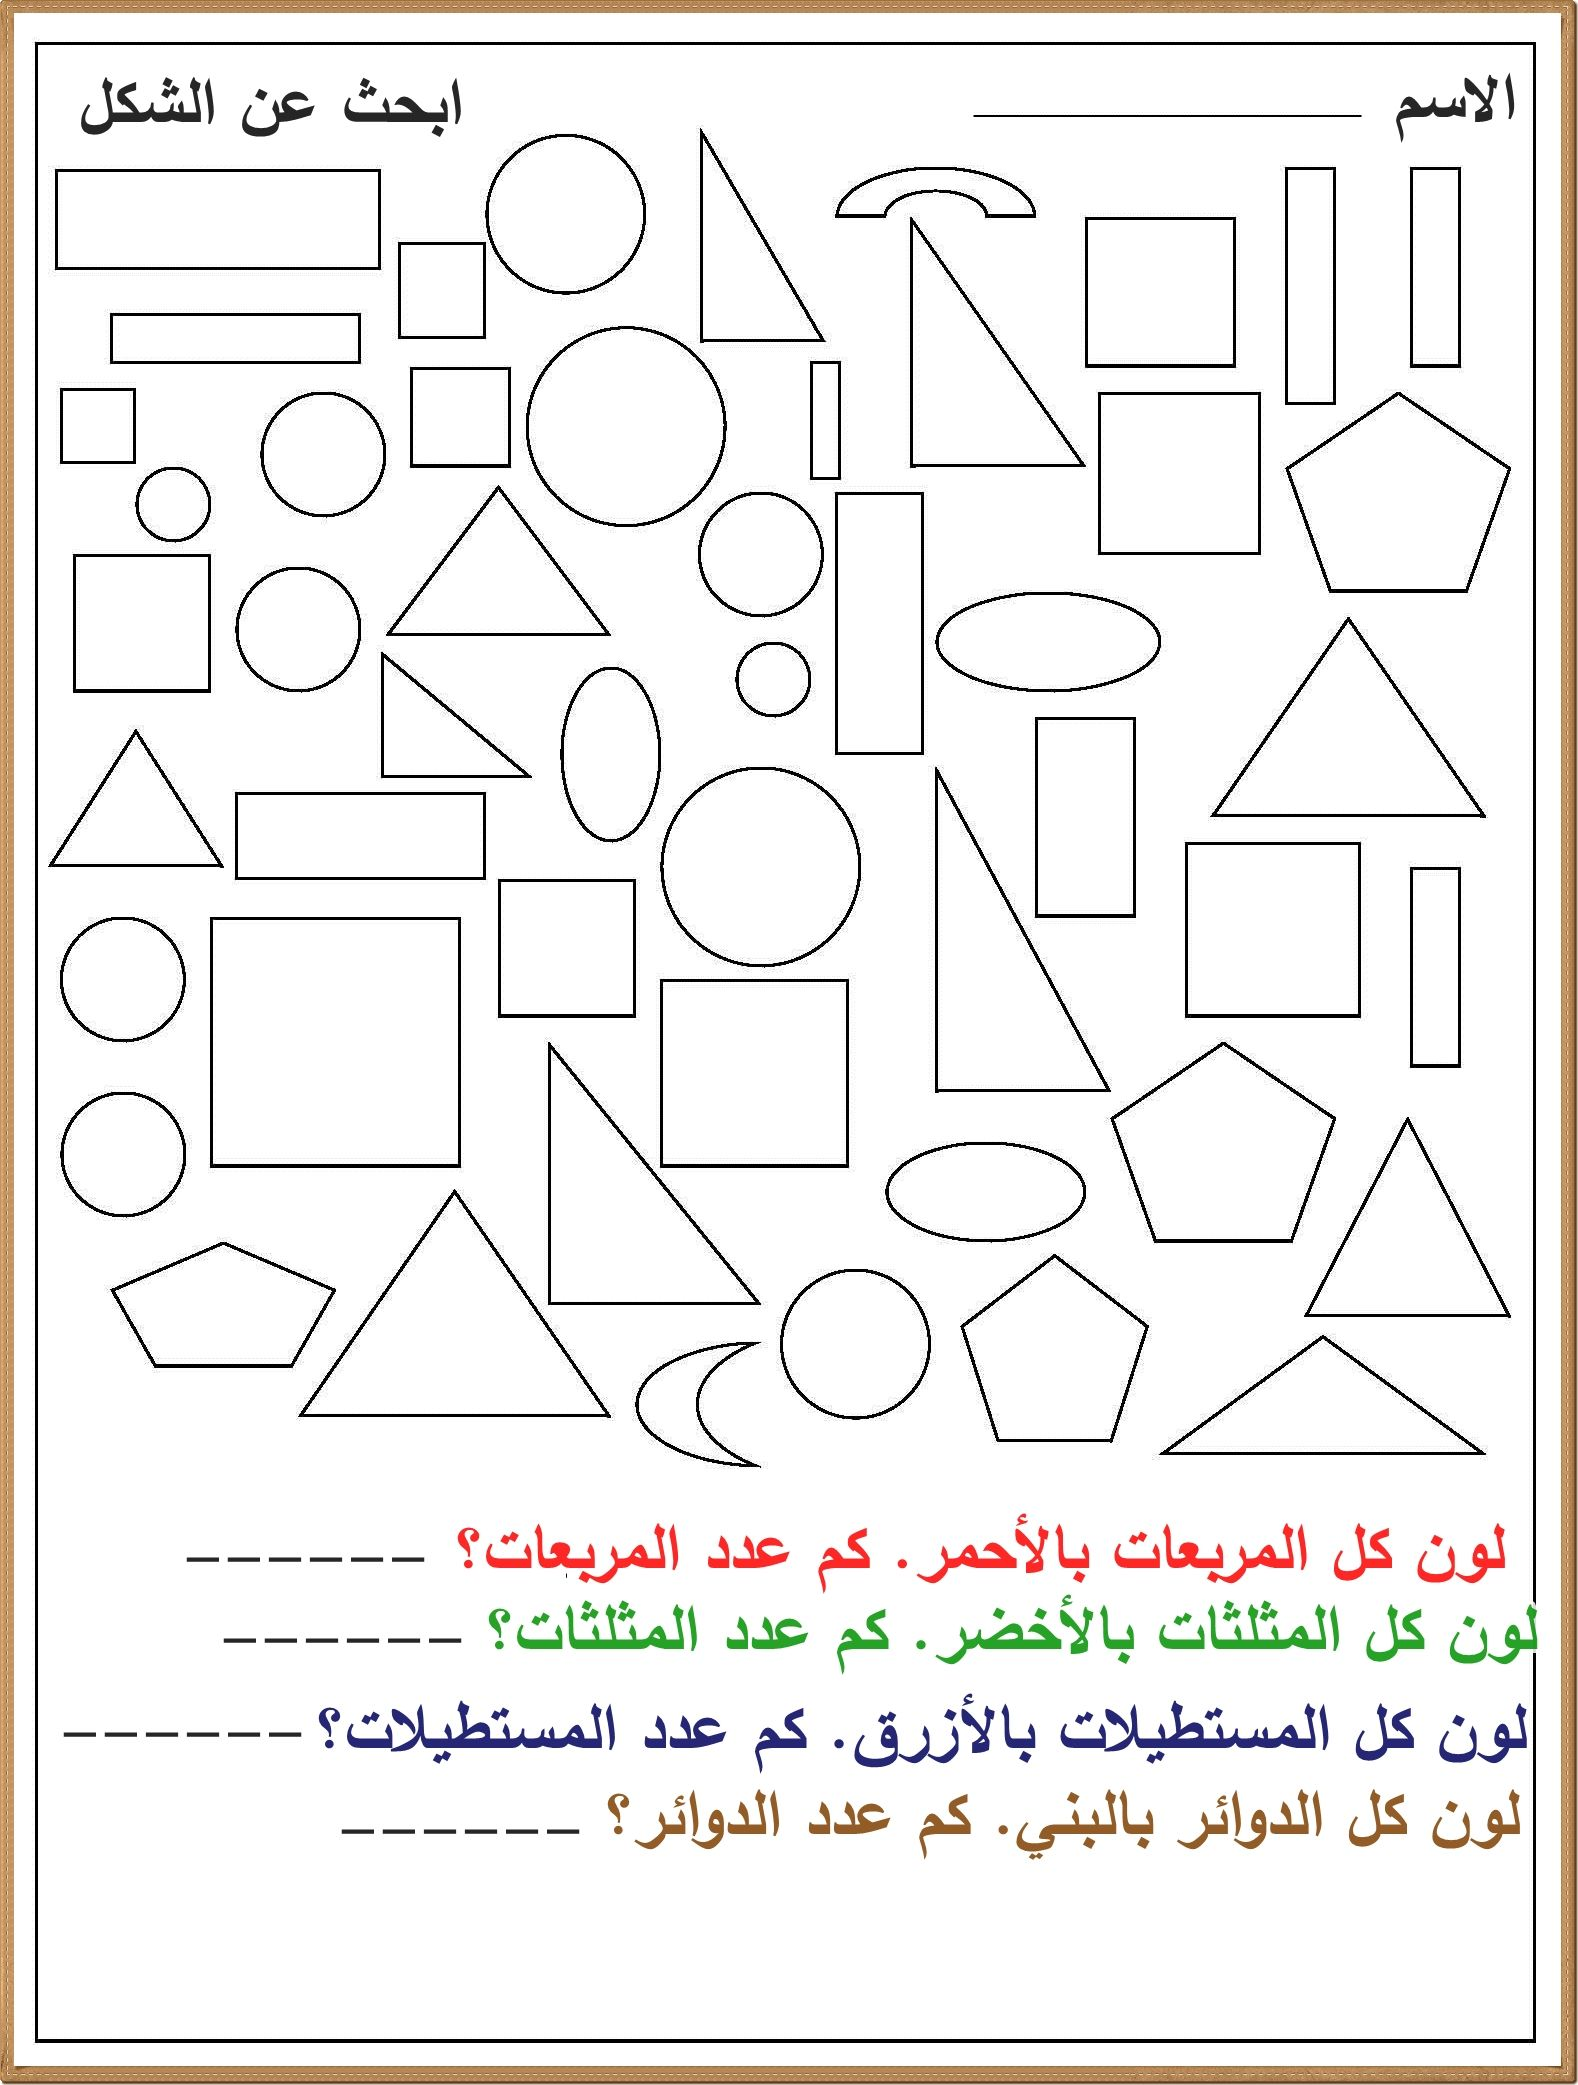 تمارين للرياضيات Kg2 Learning Arabic Math Worksheets Arabic Language